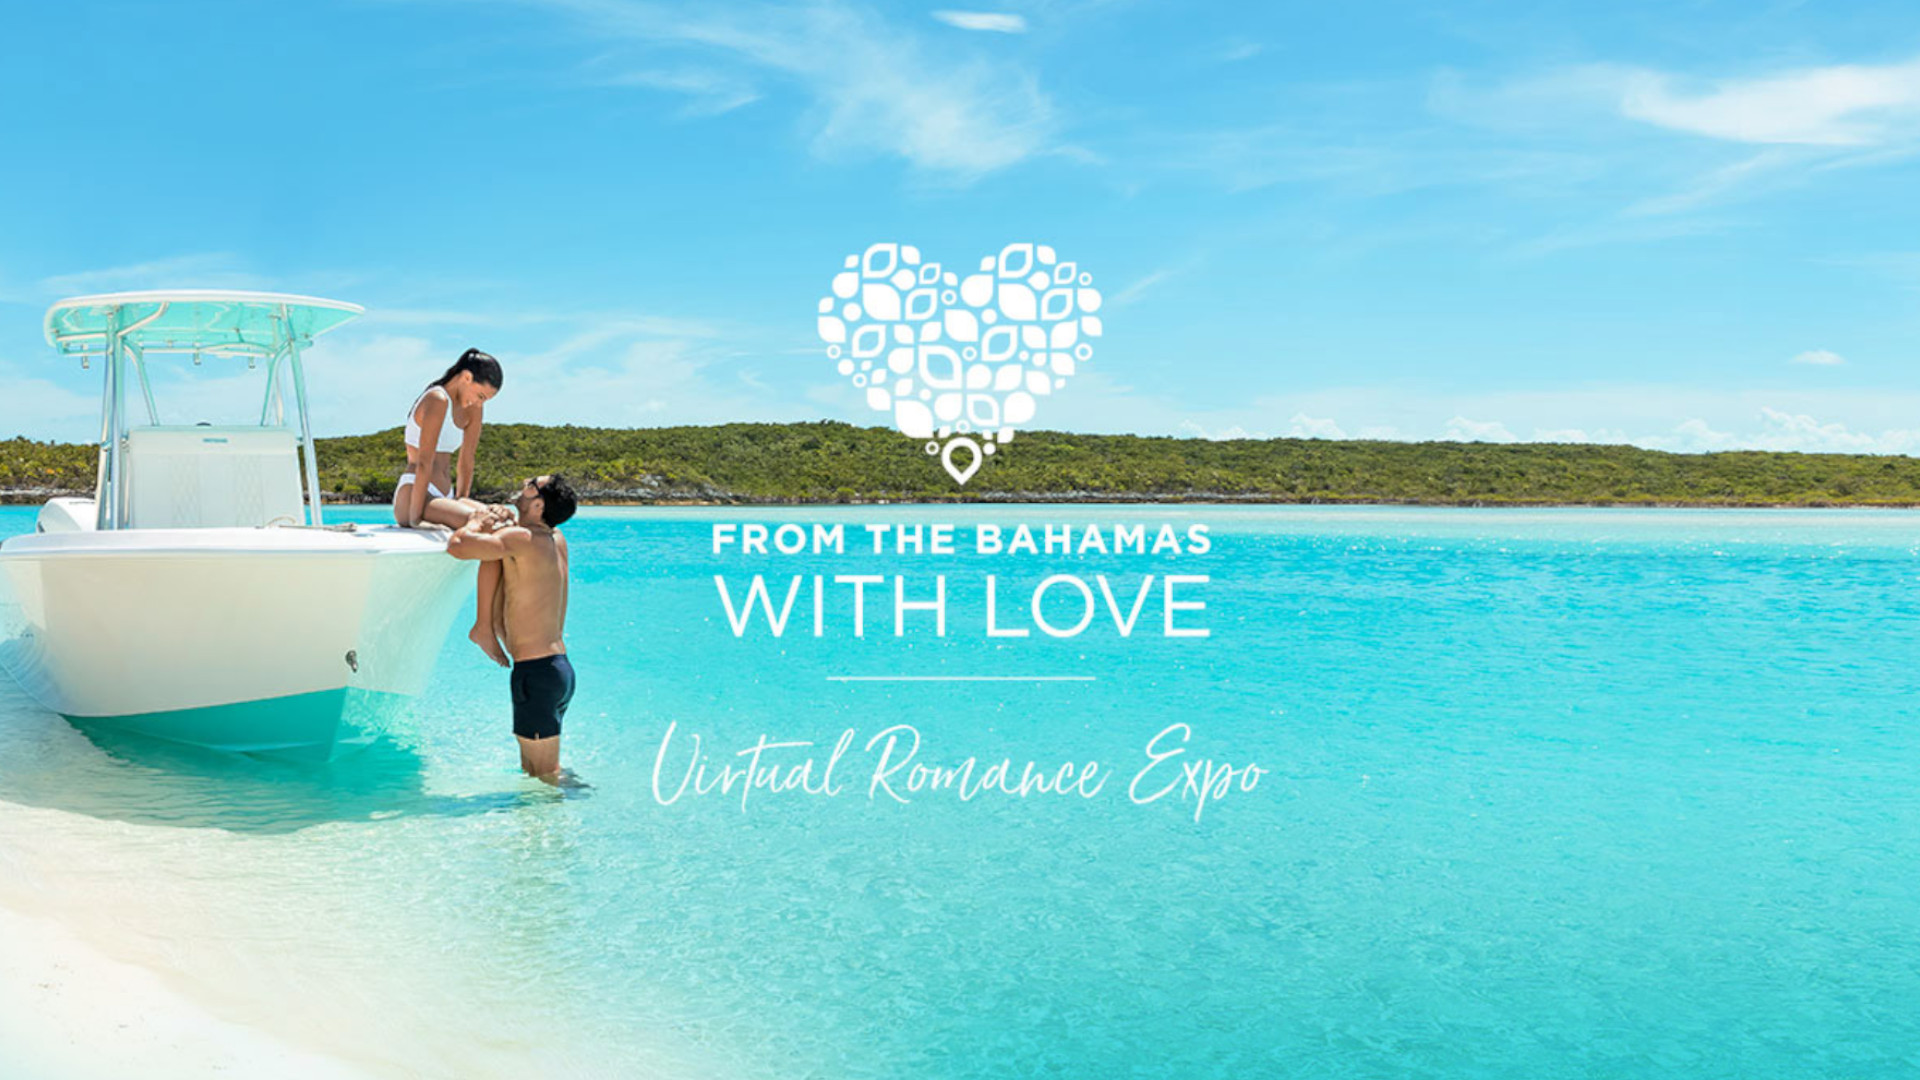 Form Bahamas with Love, Virtual Romance Expo Campaign